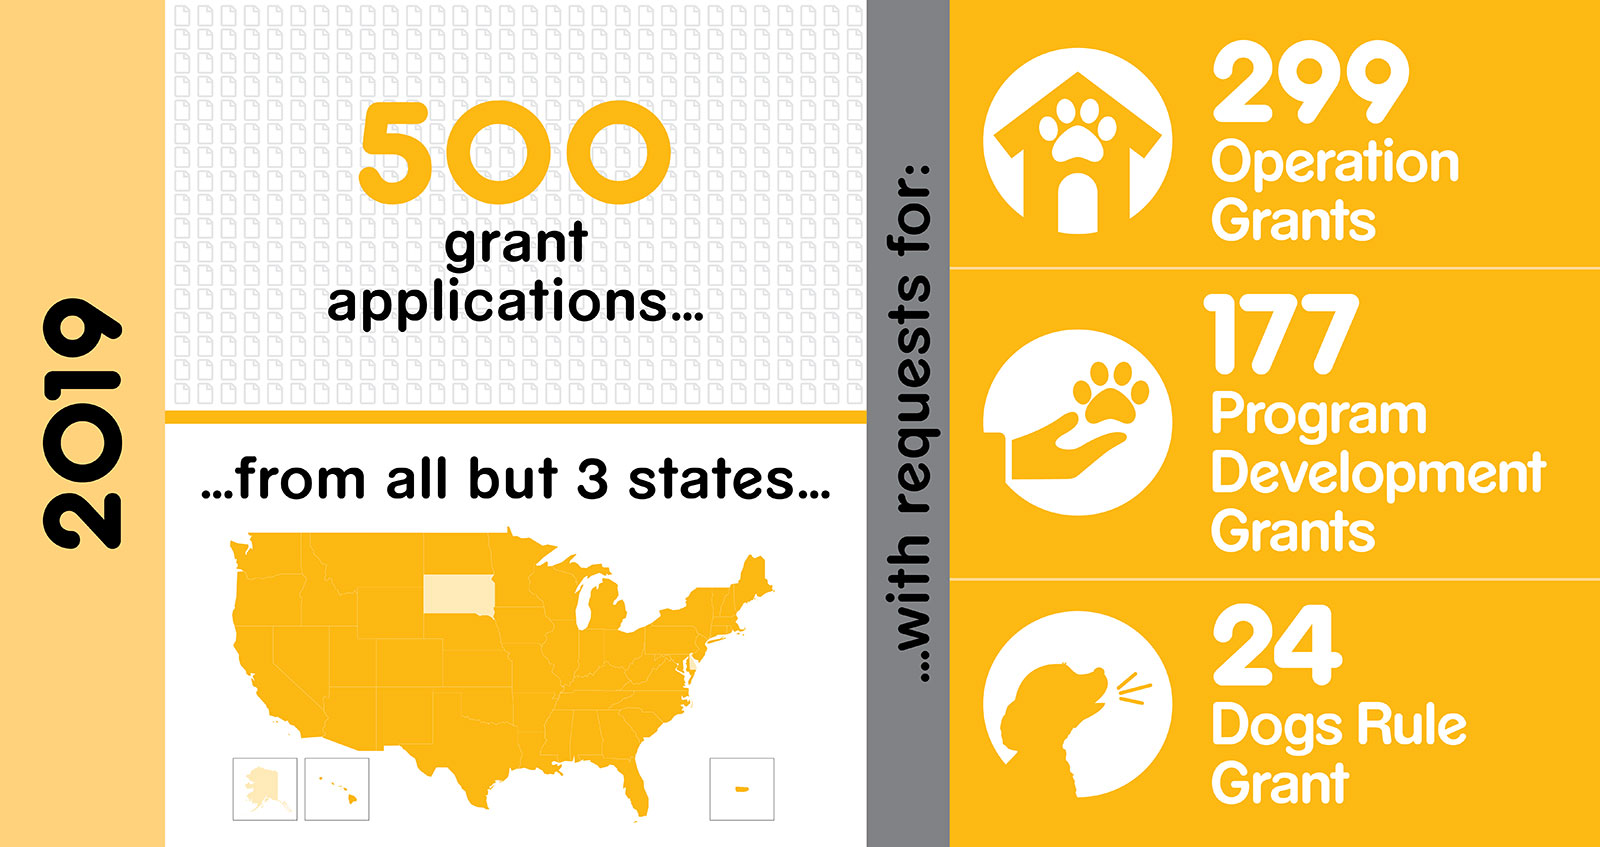 infographic of application statistics